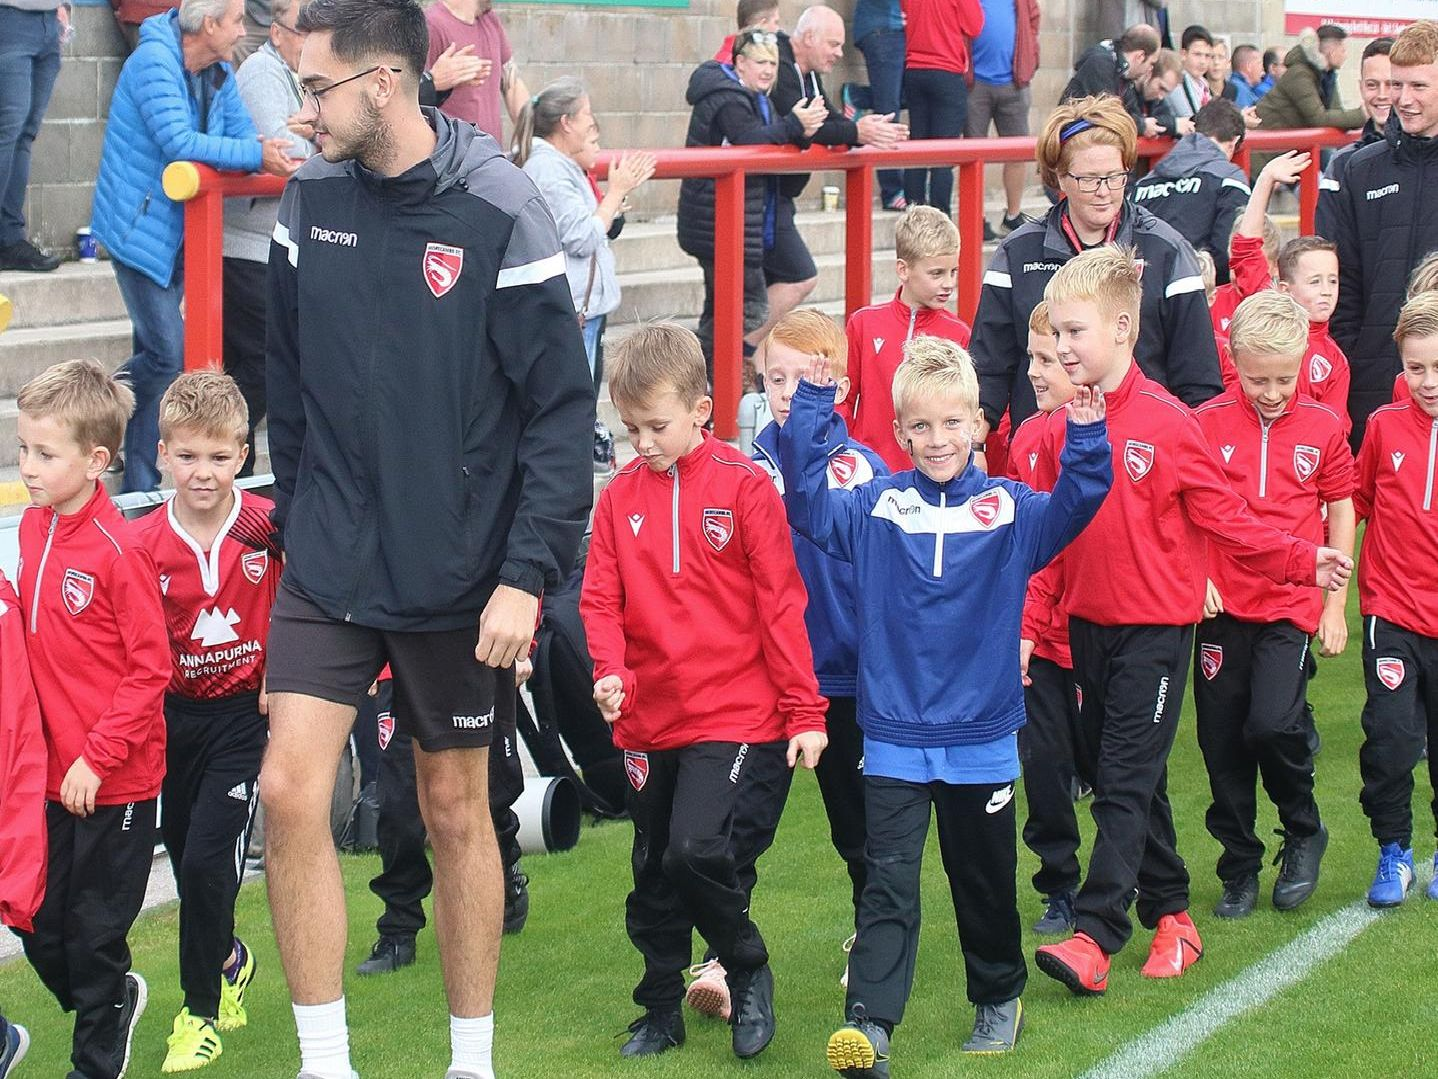 Morecambe FC Academy Day